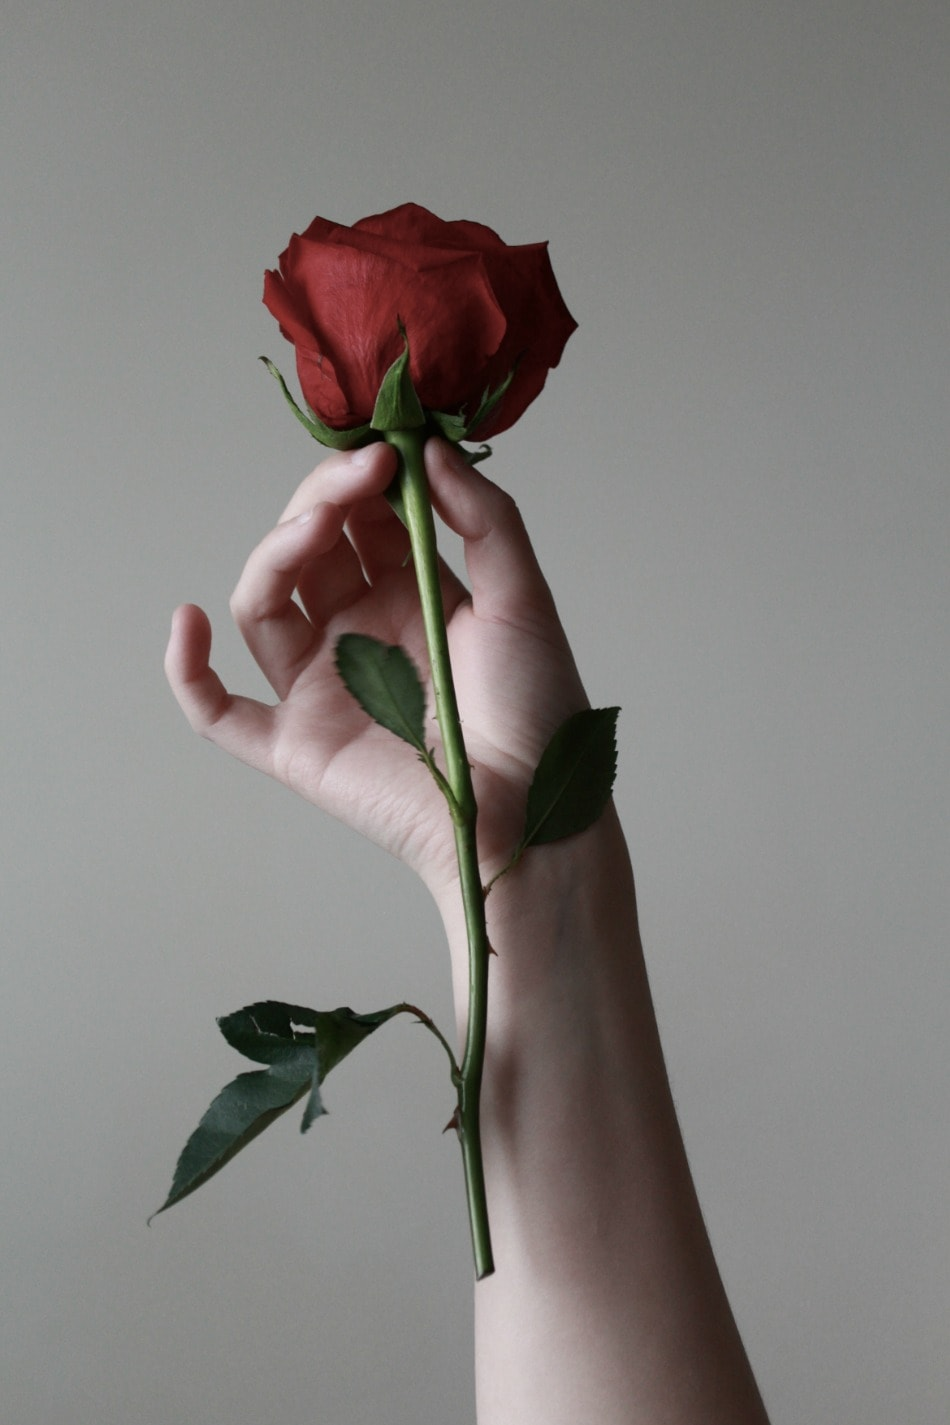 holding a single rose